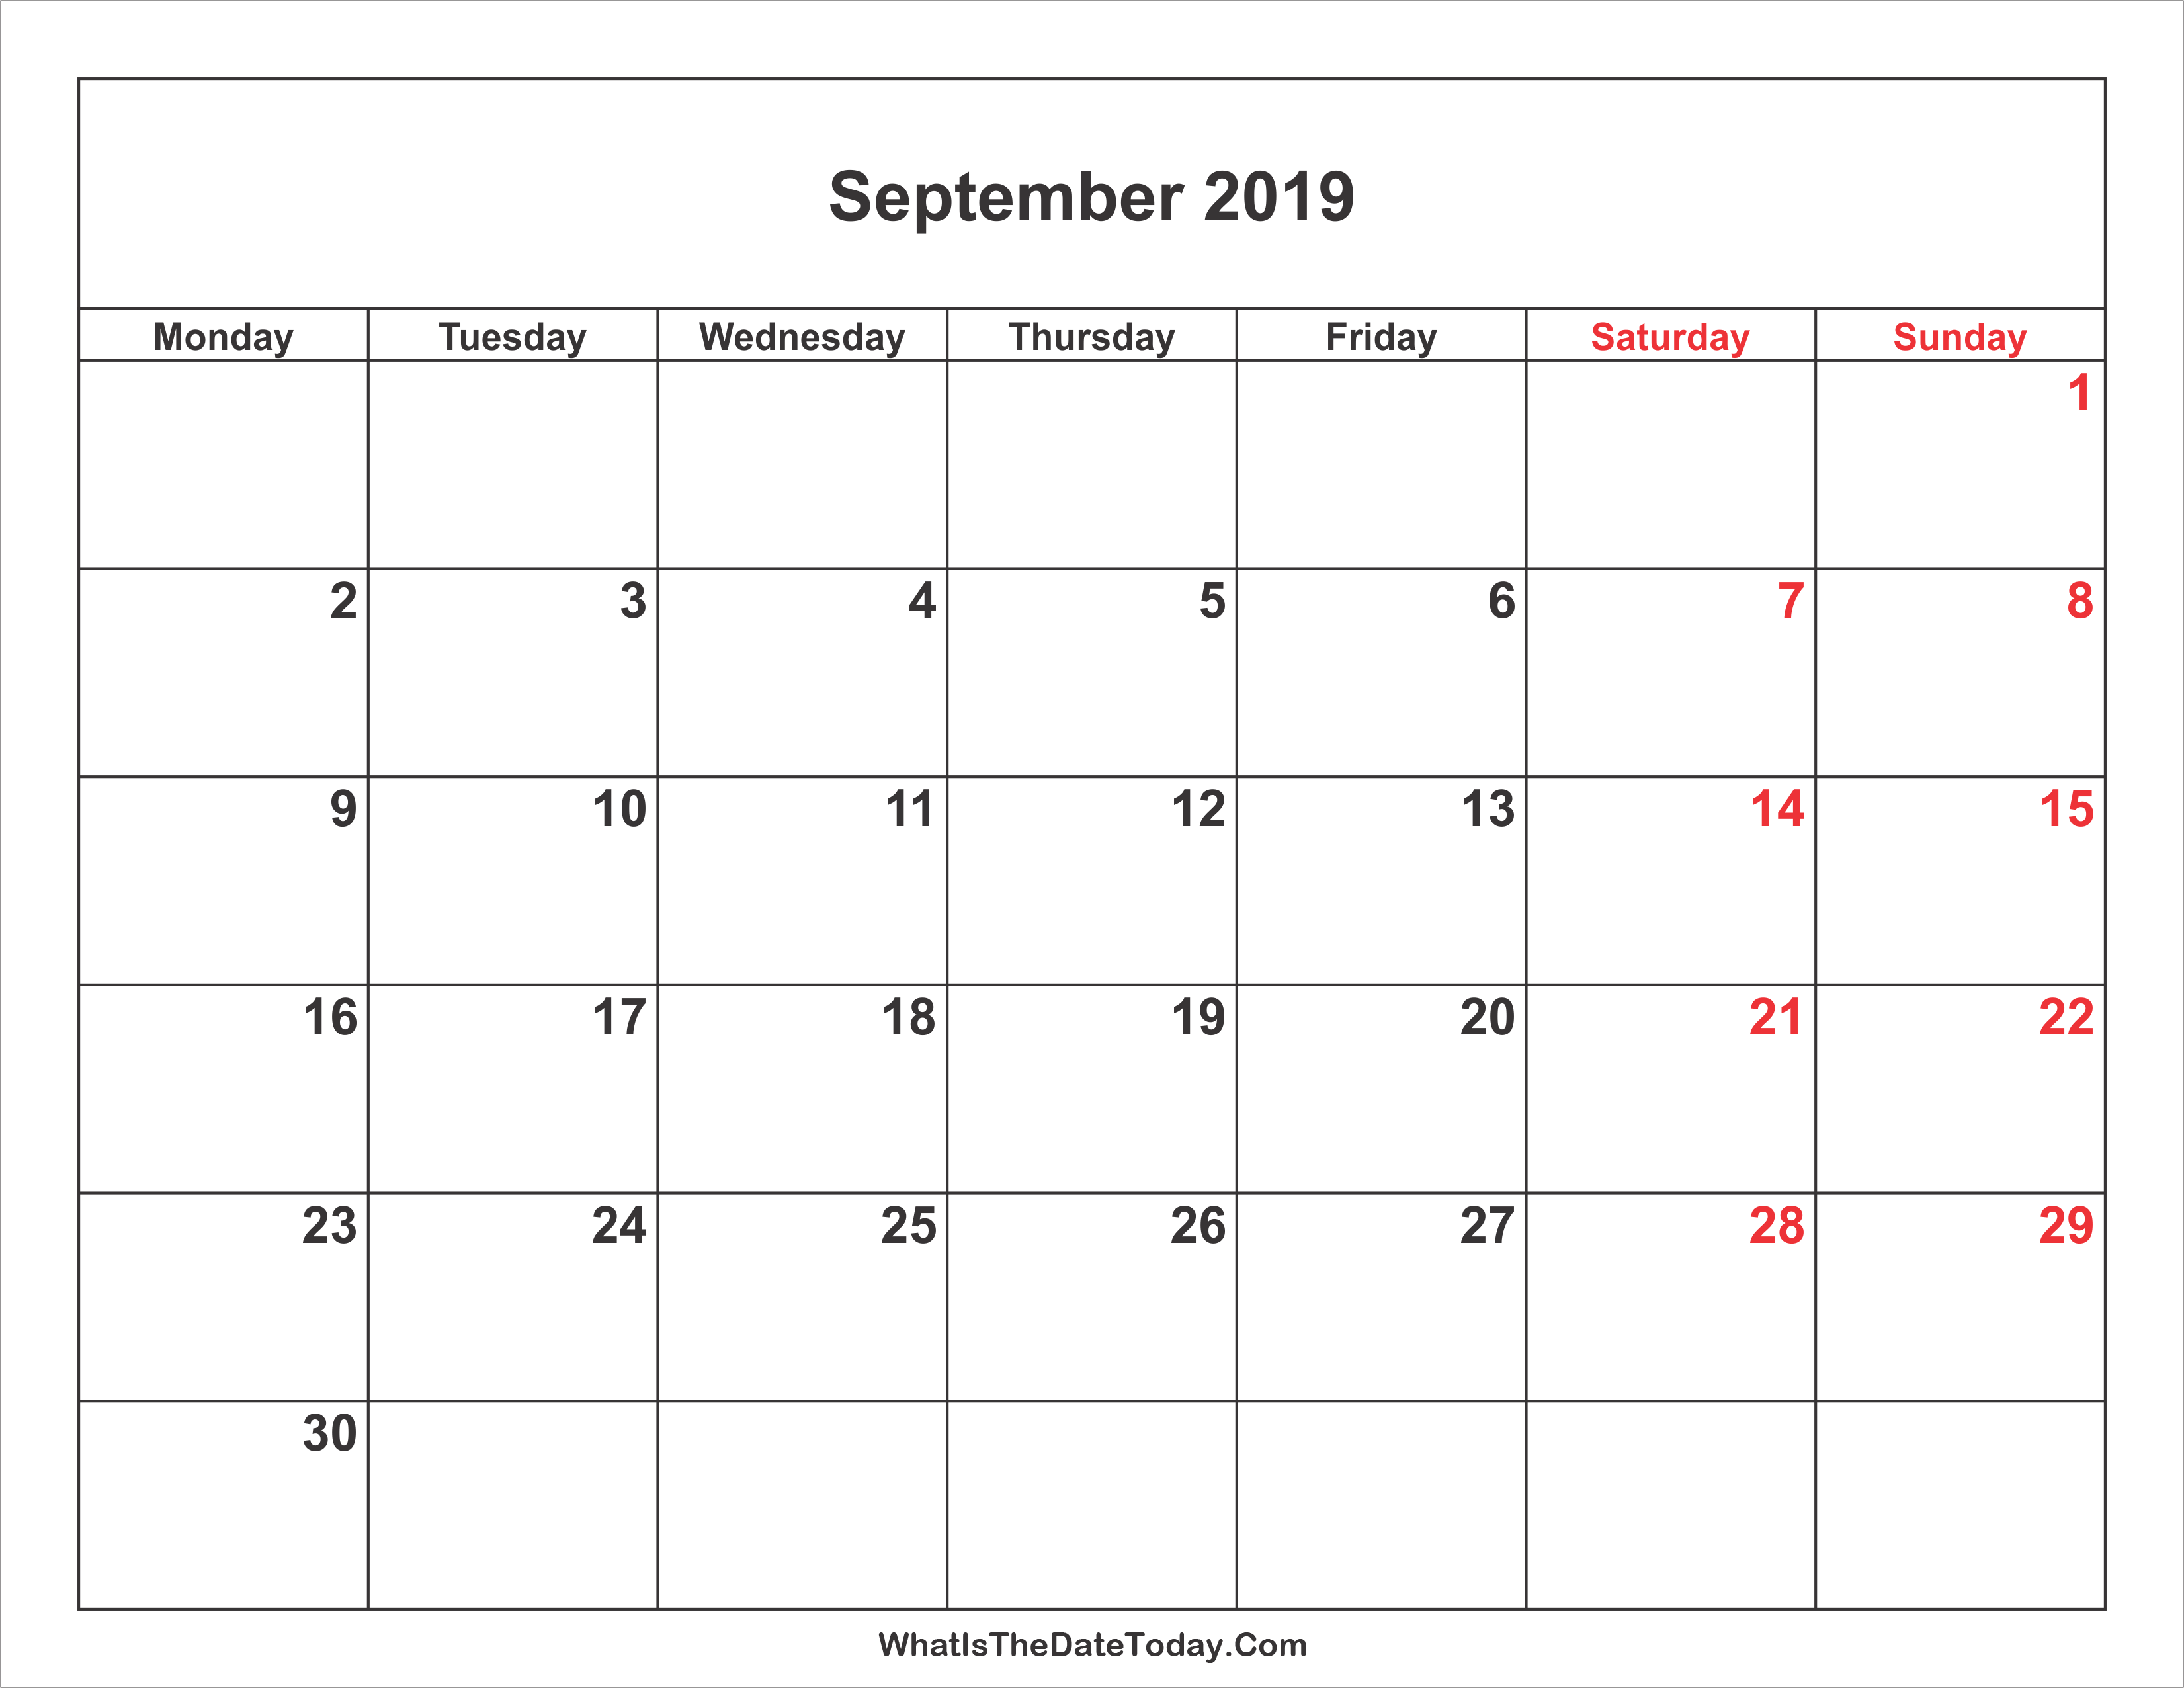 September 2019 Calendar With Weekend Highlight Whatisthedatetoday Com